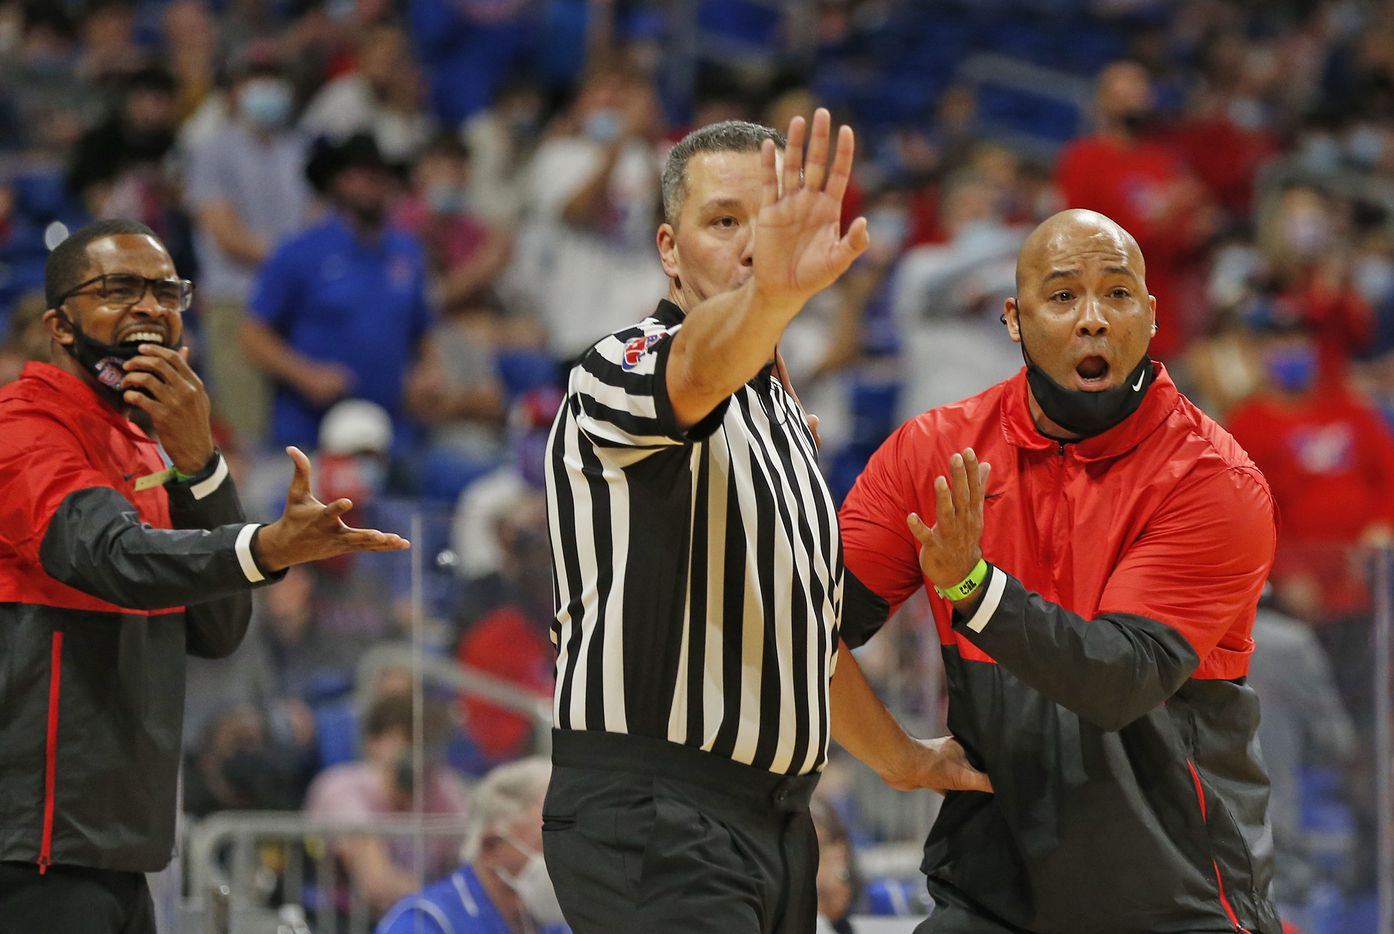 Duncanville head coach David Peavy pleads with official on a call. UIL boys Class 6A basketball state championship game between Duncanville and Austin Westlake on Saturday, March 13, 2021 at the Alamodome.